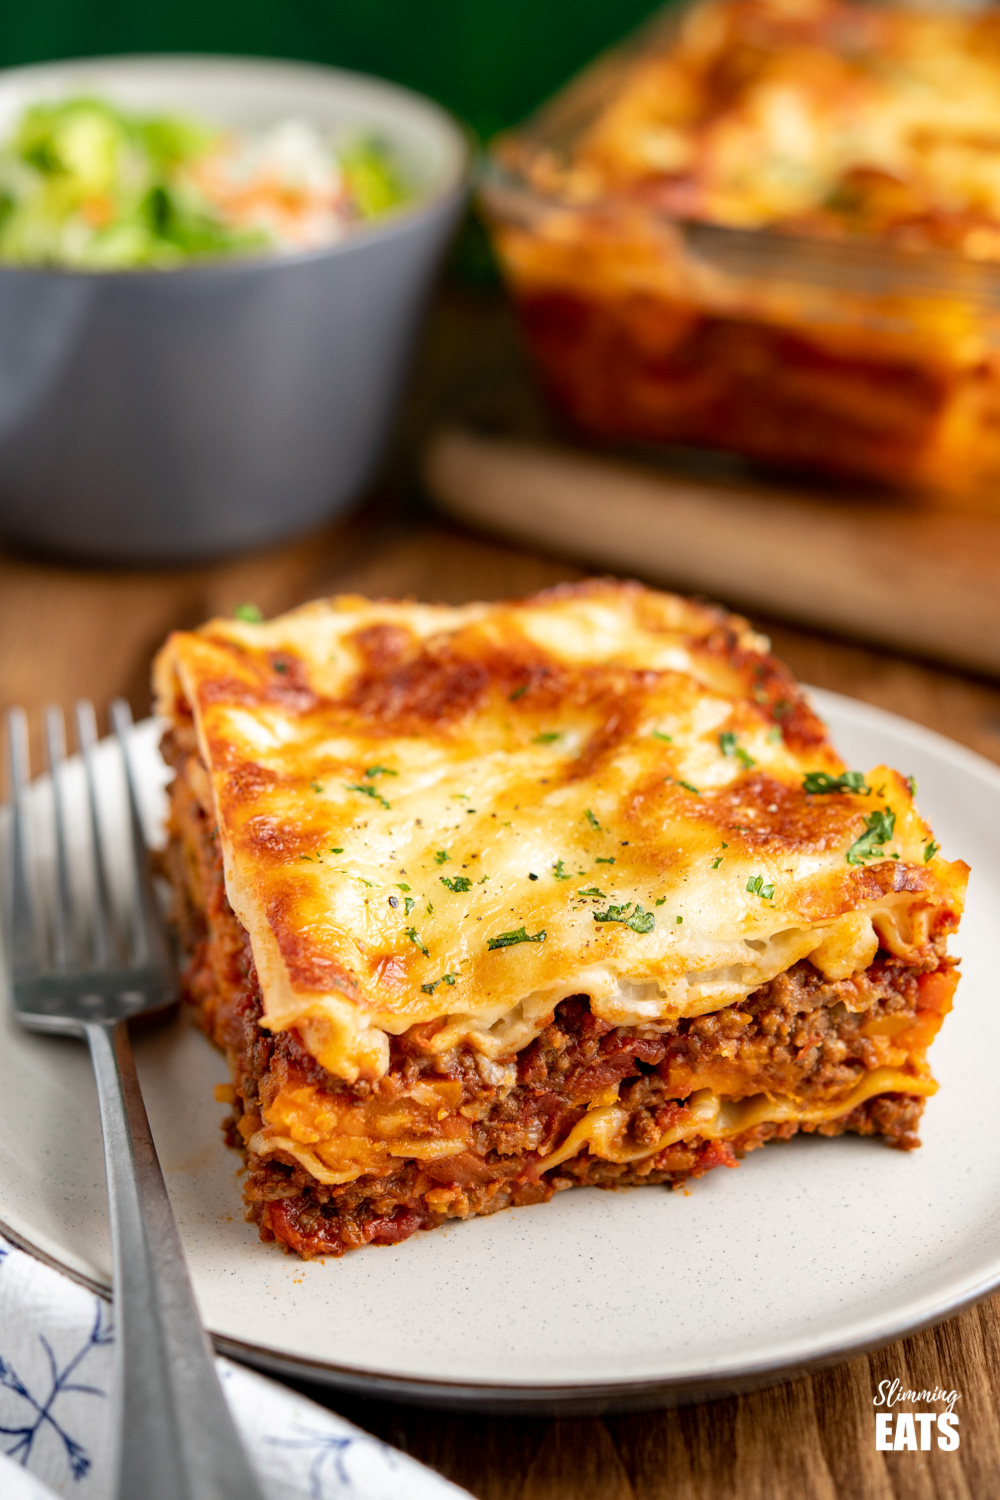 beef lasagne on cream plate with silver fork - salad and lasagne in background.